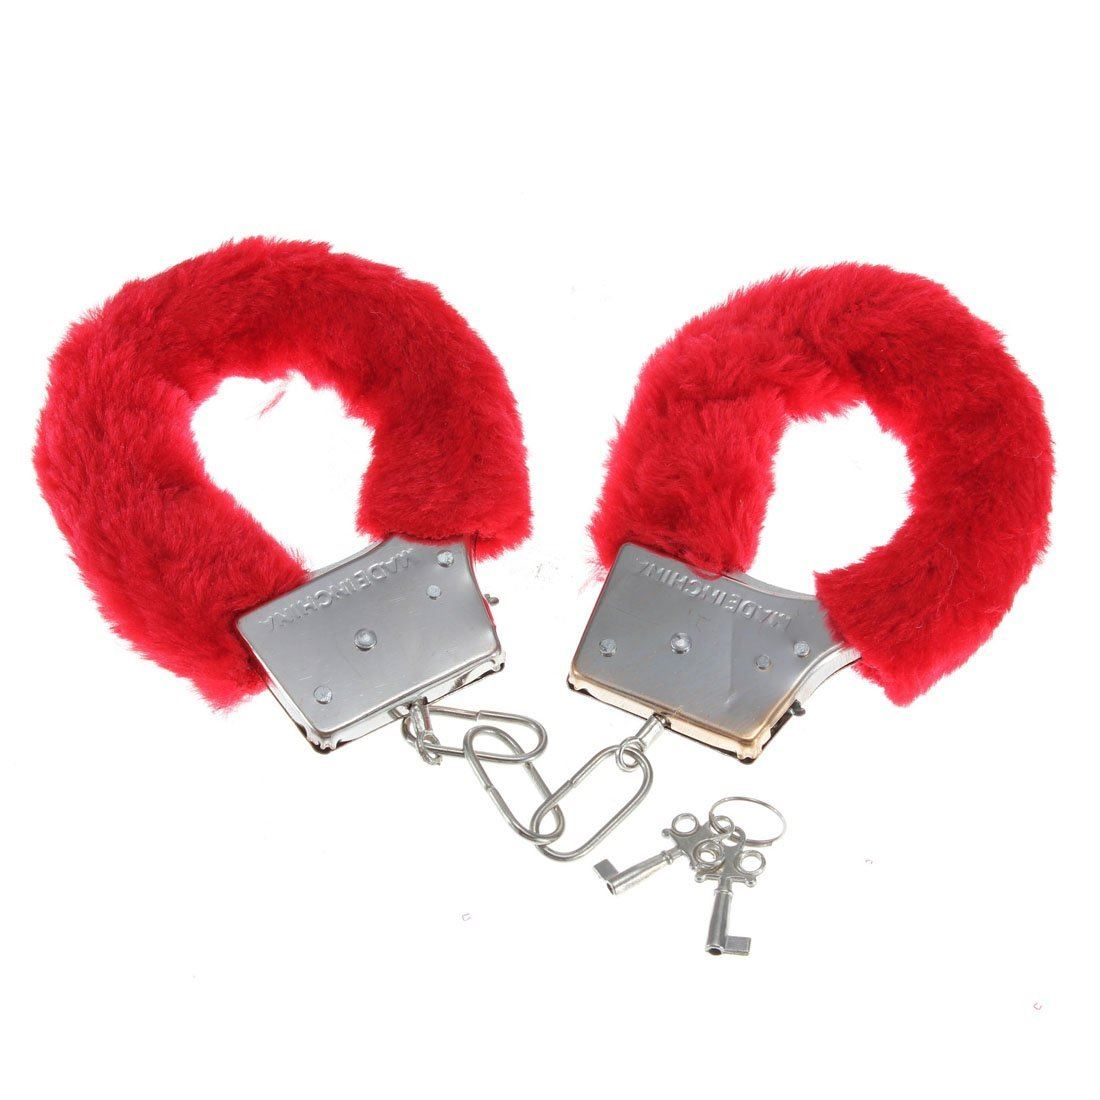 FURRY-FLUFFY-PINK-BLACK-RED-METAL-HANDCUFFS-FANCY-DRESS-HEN-NIGHT-STAG-PLAY-TOYS thumbnail 18